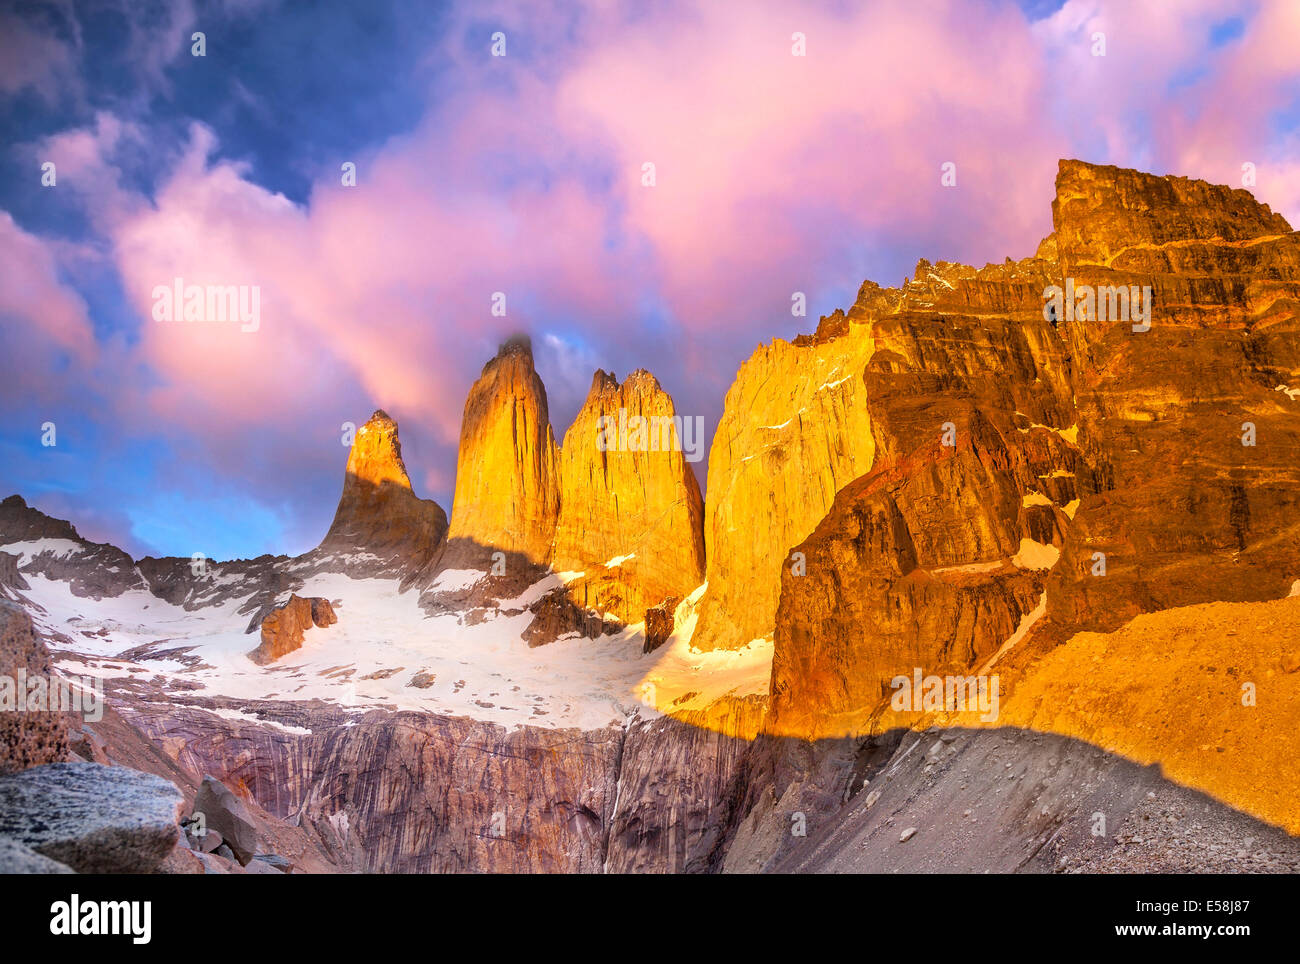 Beautiful sunrise in Torres del Paine national park, Patagonia, Chile - Stock Image